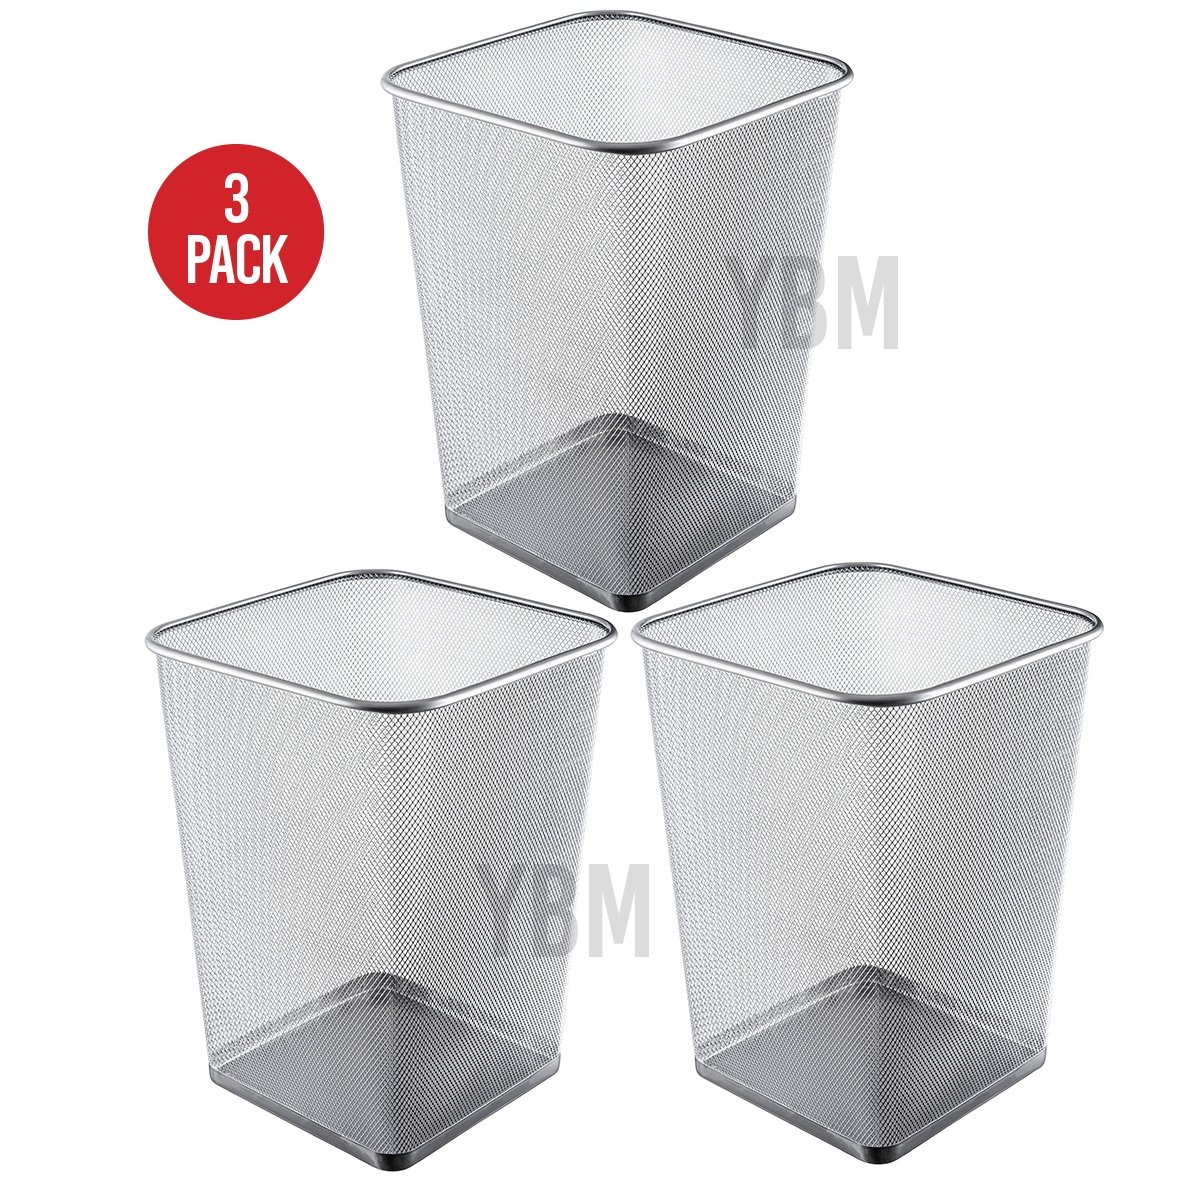 Ybmhome Steel Mesh Square Open Top Waste Basket Bin Trash Can for Office Home 2487-3 (3, 5 Gallon)